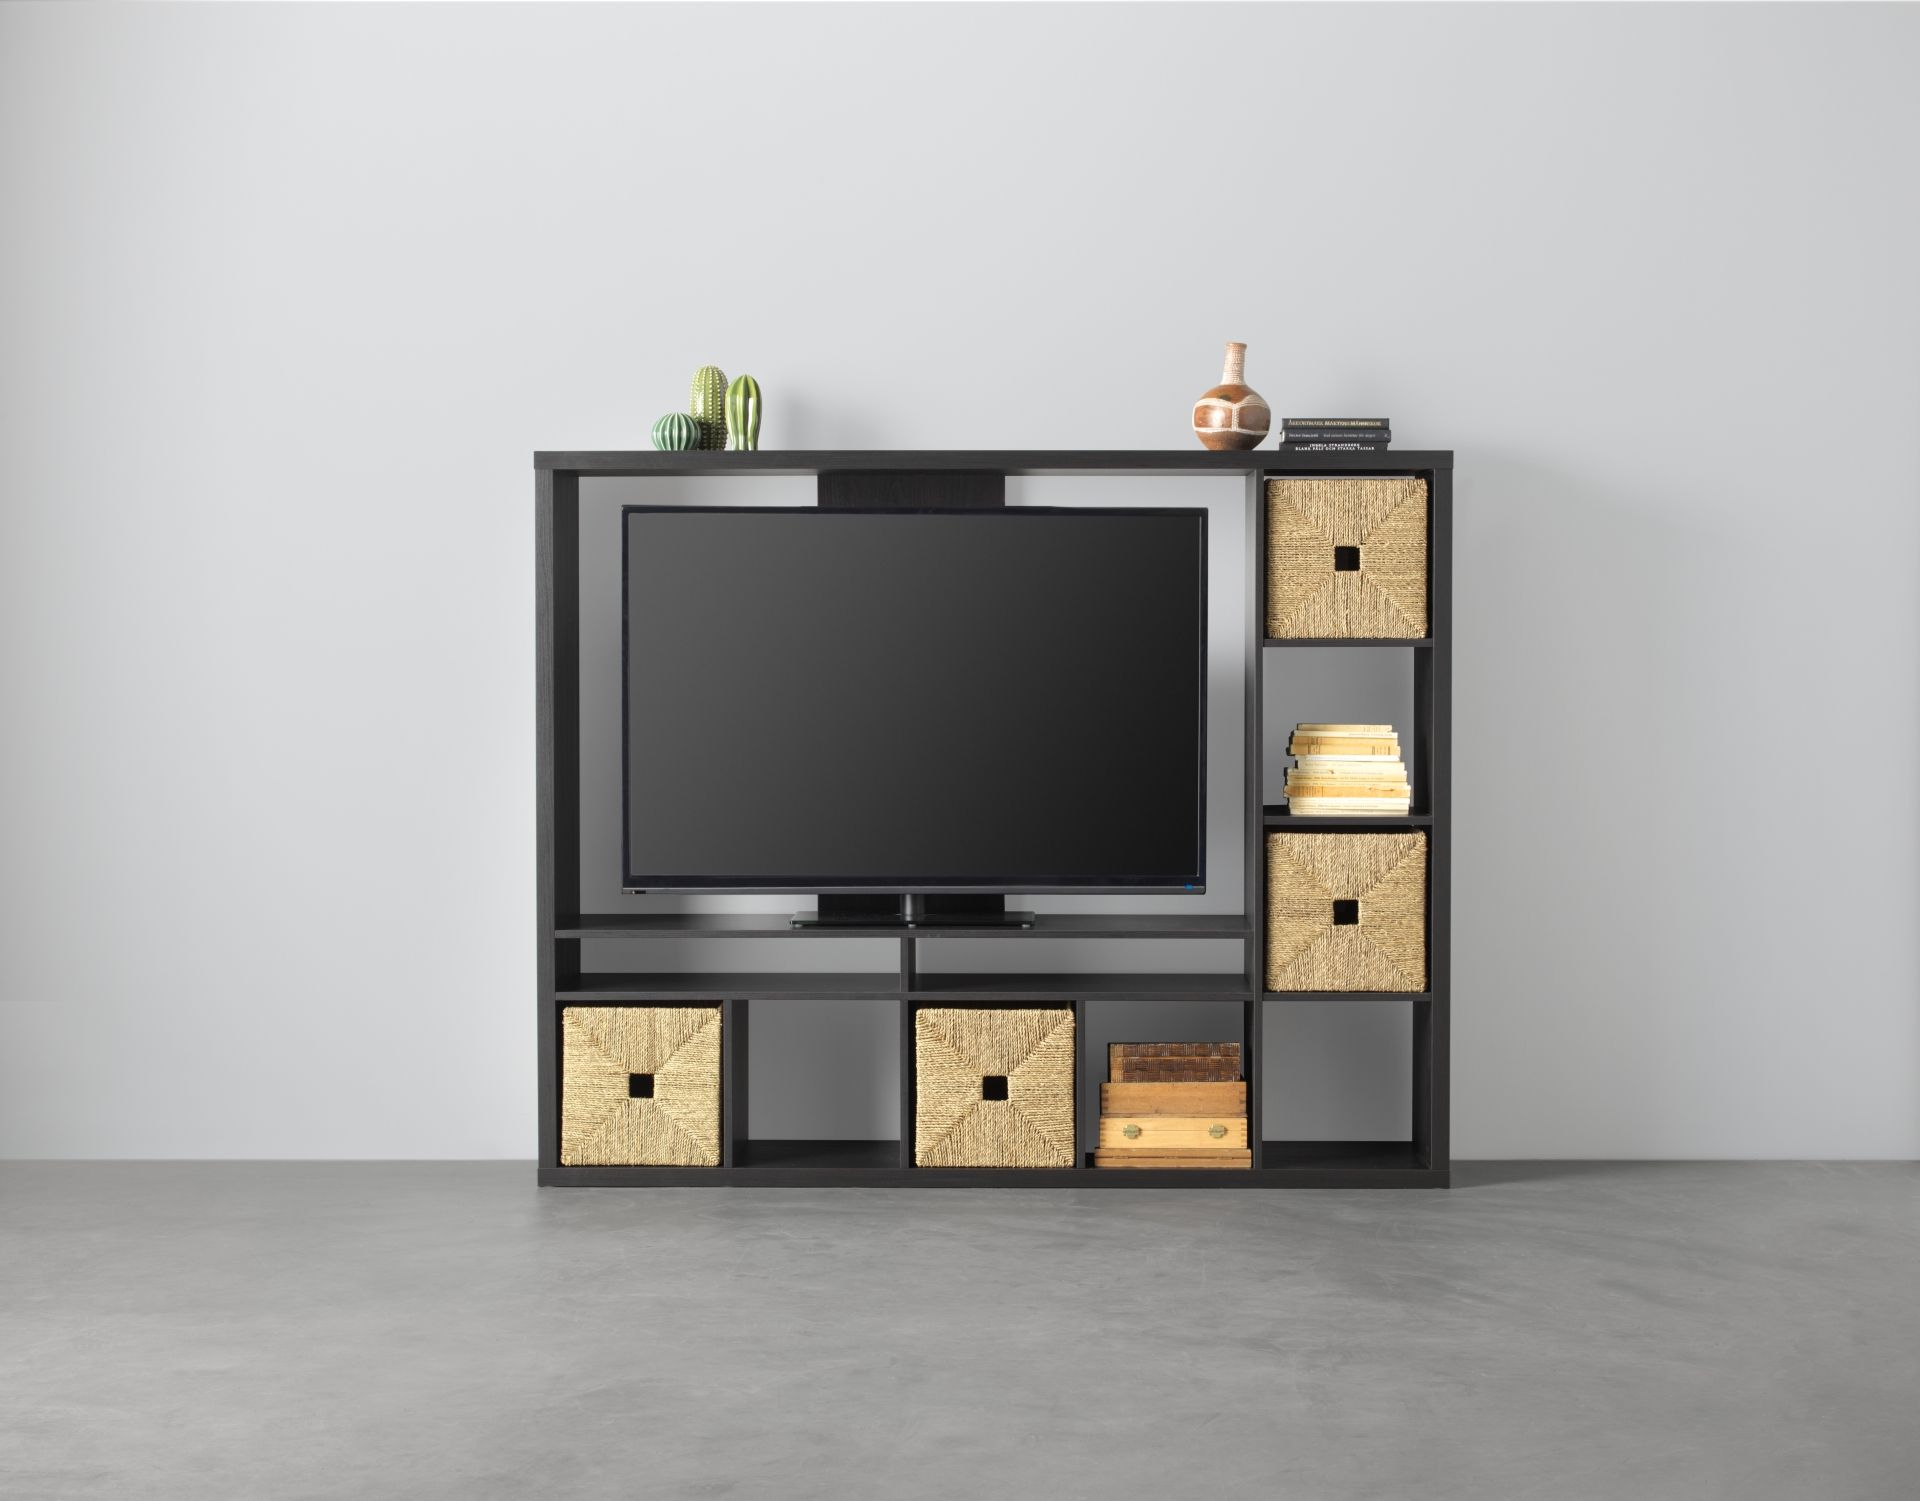 Tv Meubel Expedit Ikea.Tv Meubel Lappland Zwartbruin Swedish In 2019 Ikea Living Room